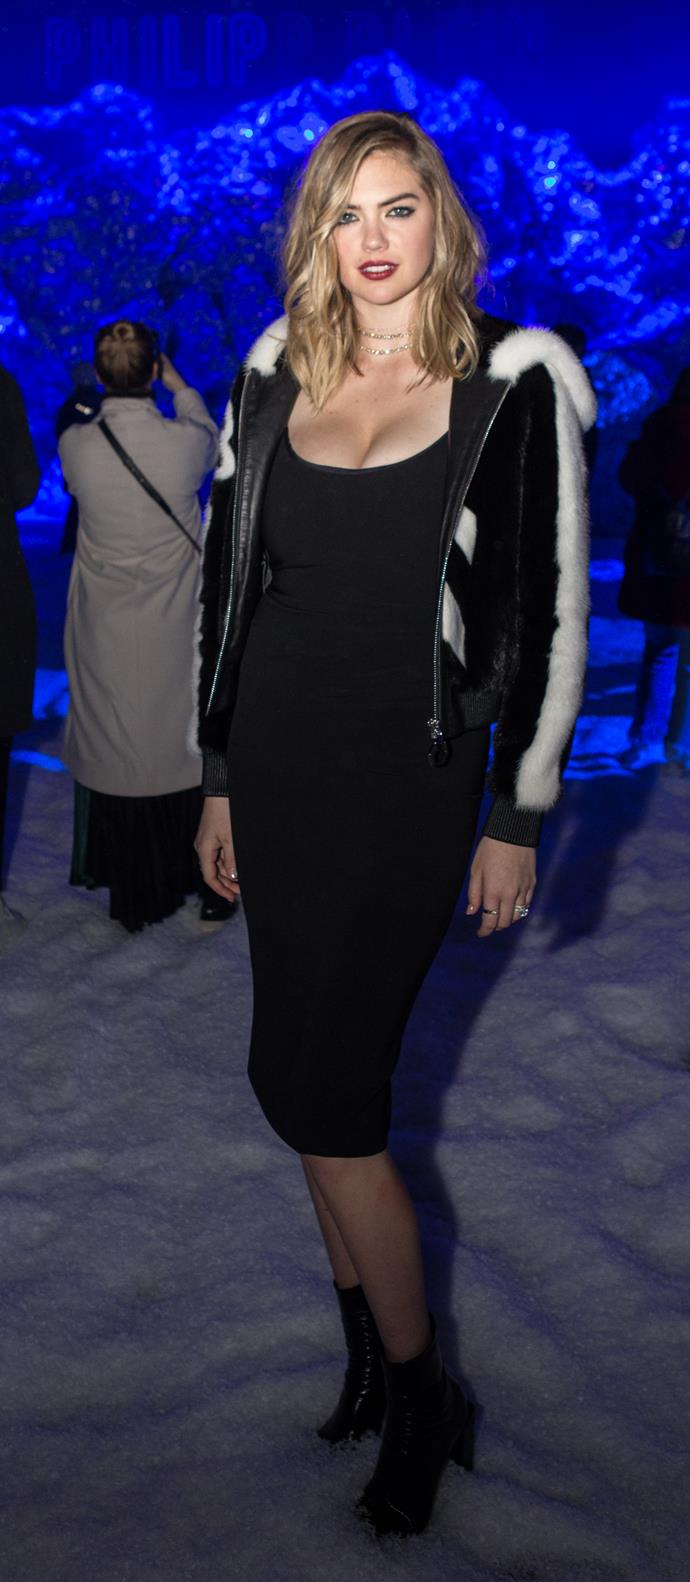 **Kate Upton** at The Philipp Plein Fashion show.